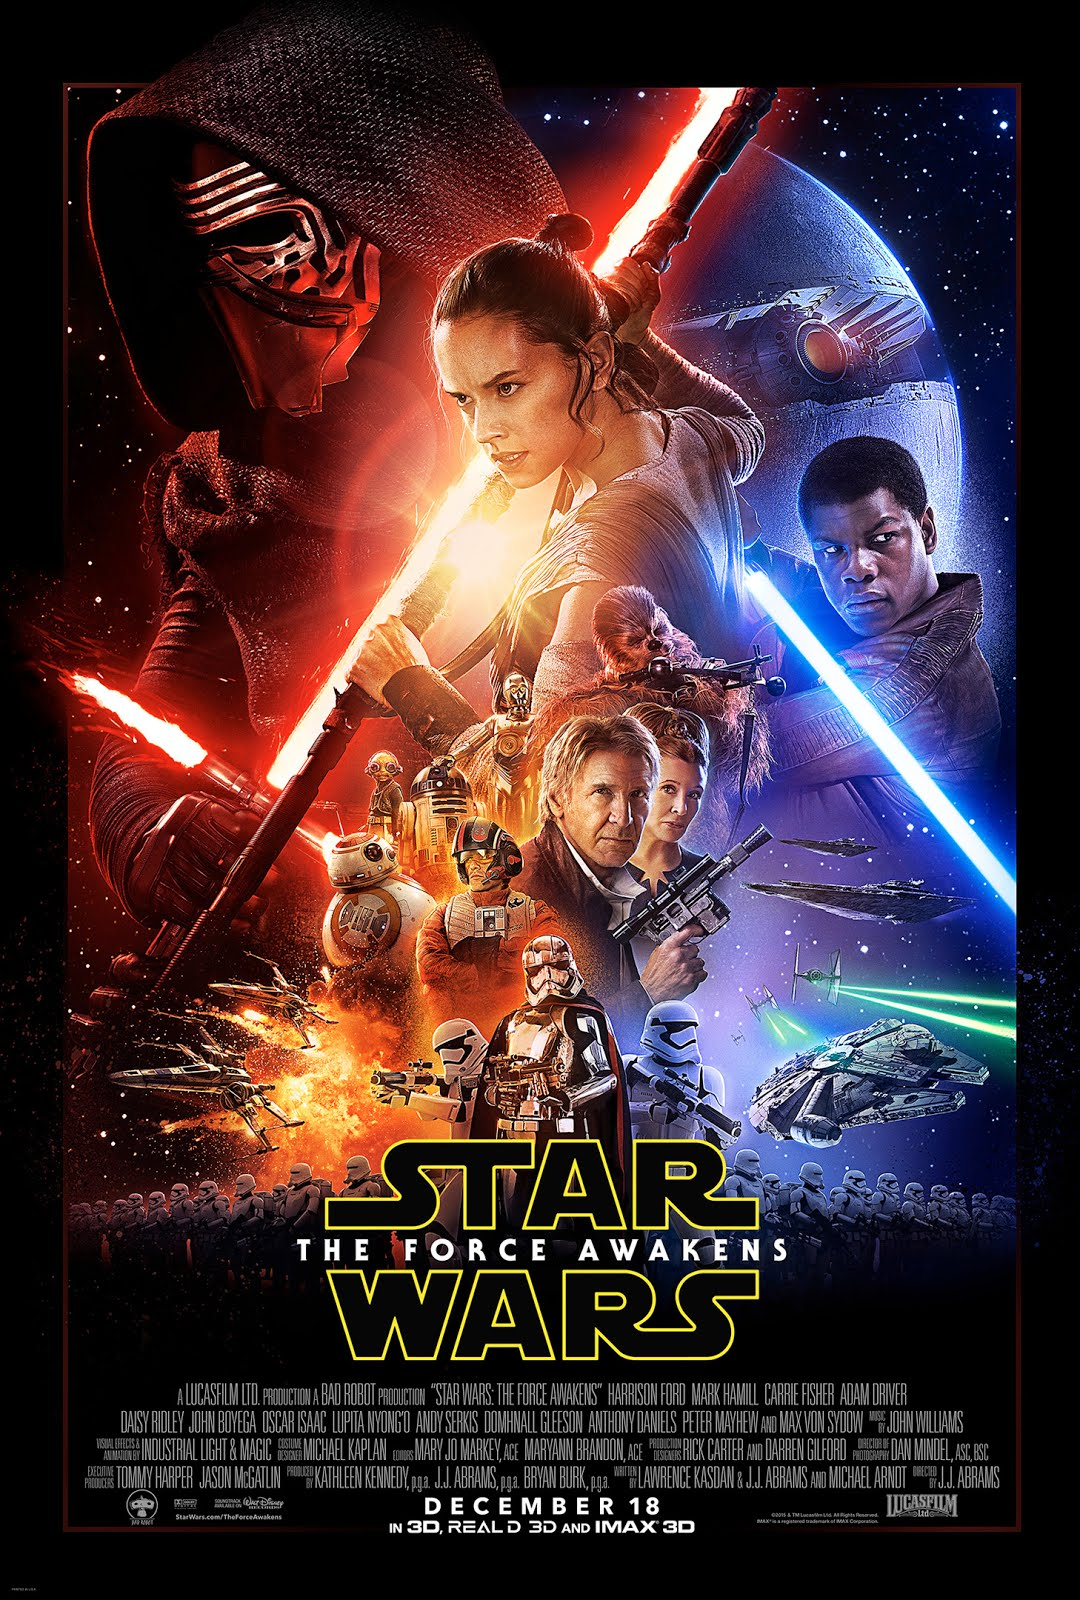 The Force Awakens cast and crew list on IMDB